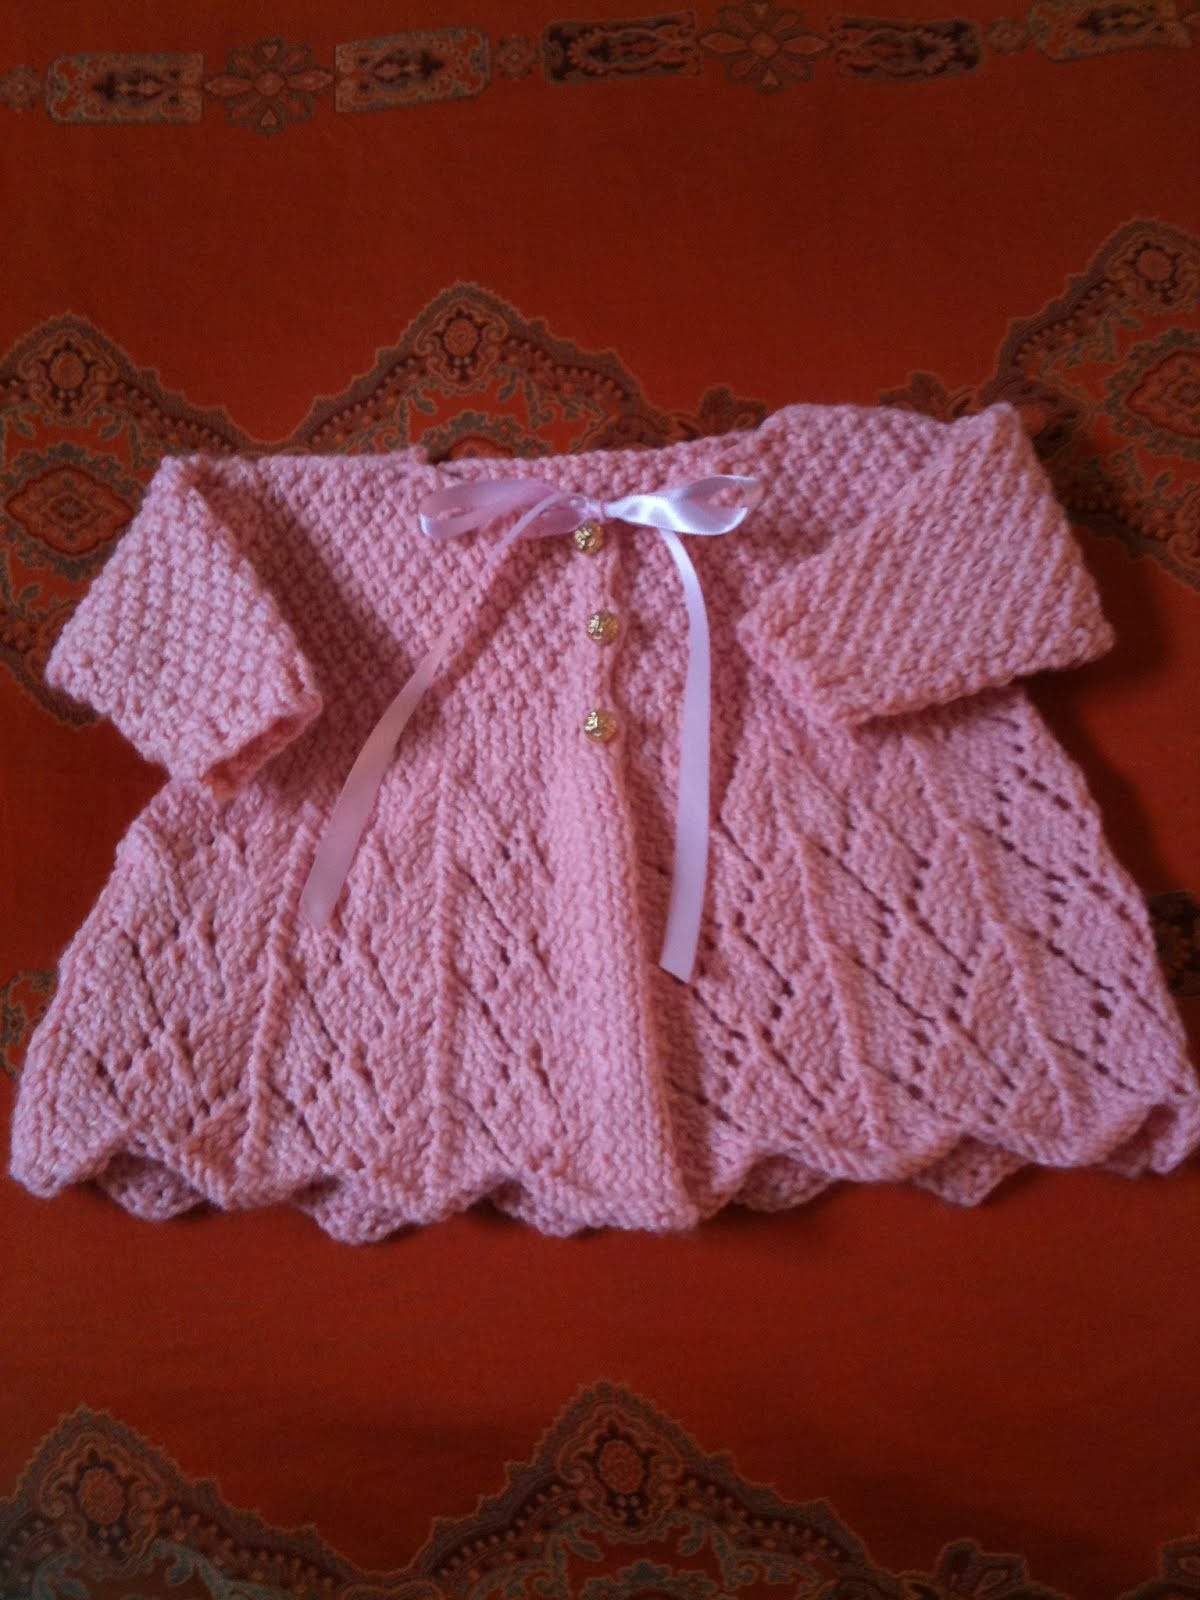 Baby Cardigan Knitting Pattern New Getting Ready for Winter Pretty Knitted Baby Sweater Patterns Of Adorable 48 Pics Baby Cardigan Knitting Pattern